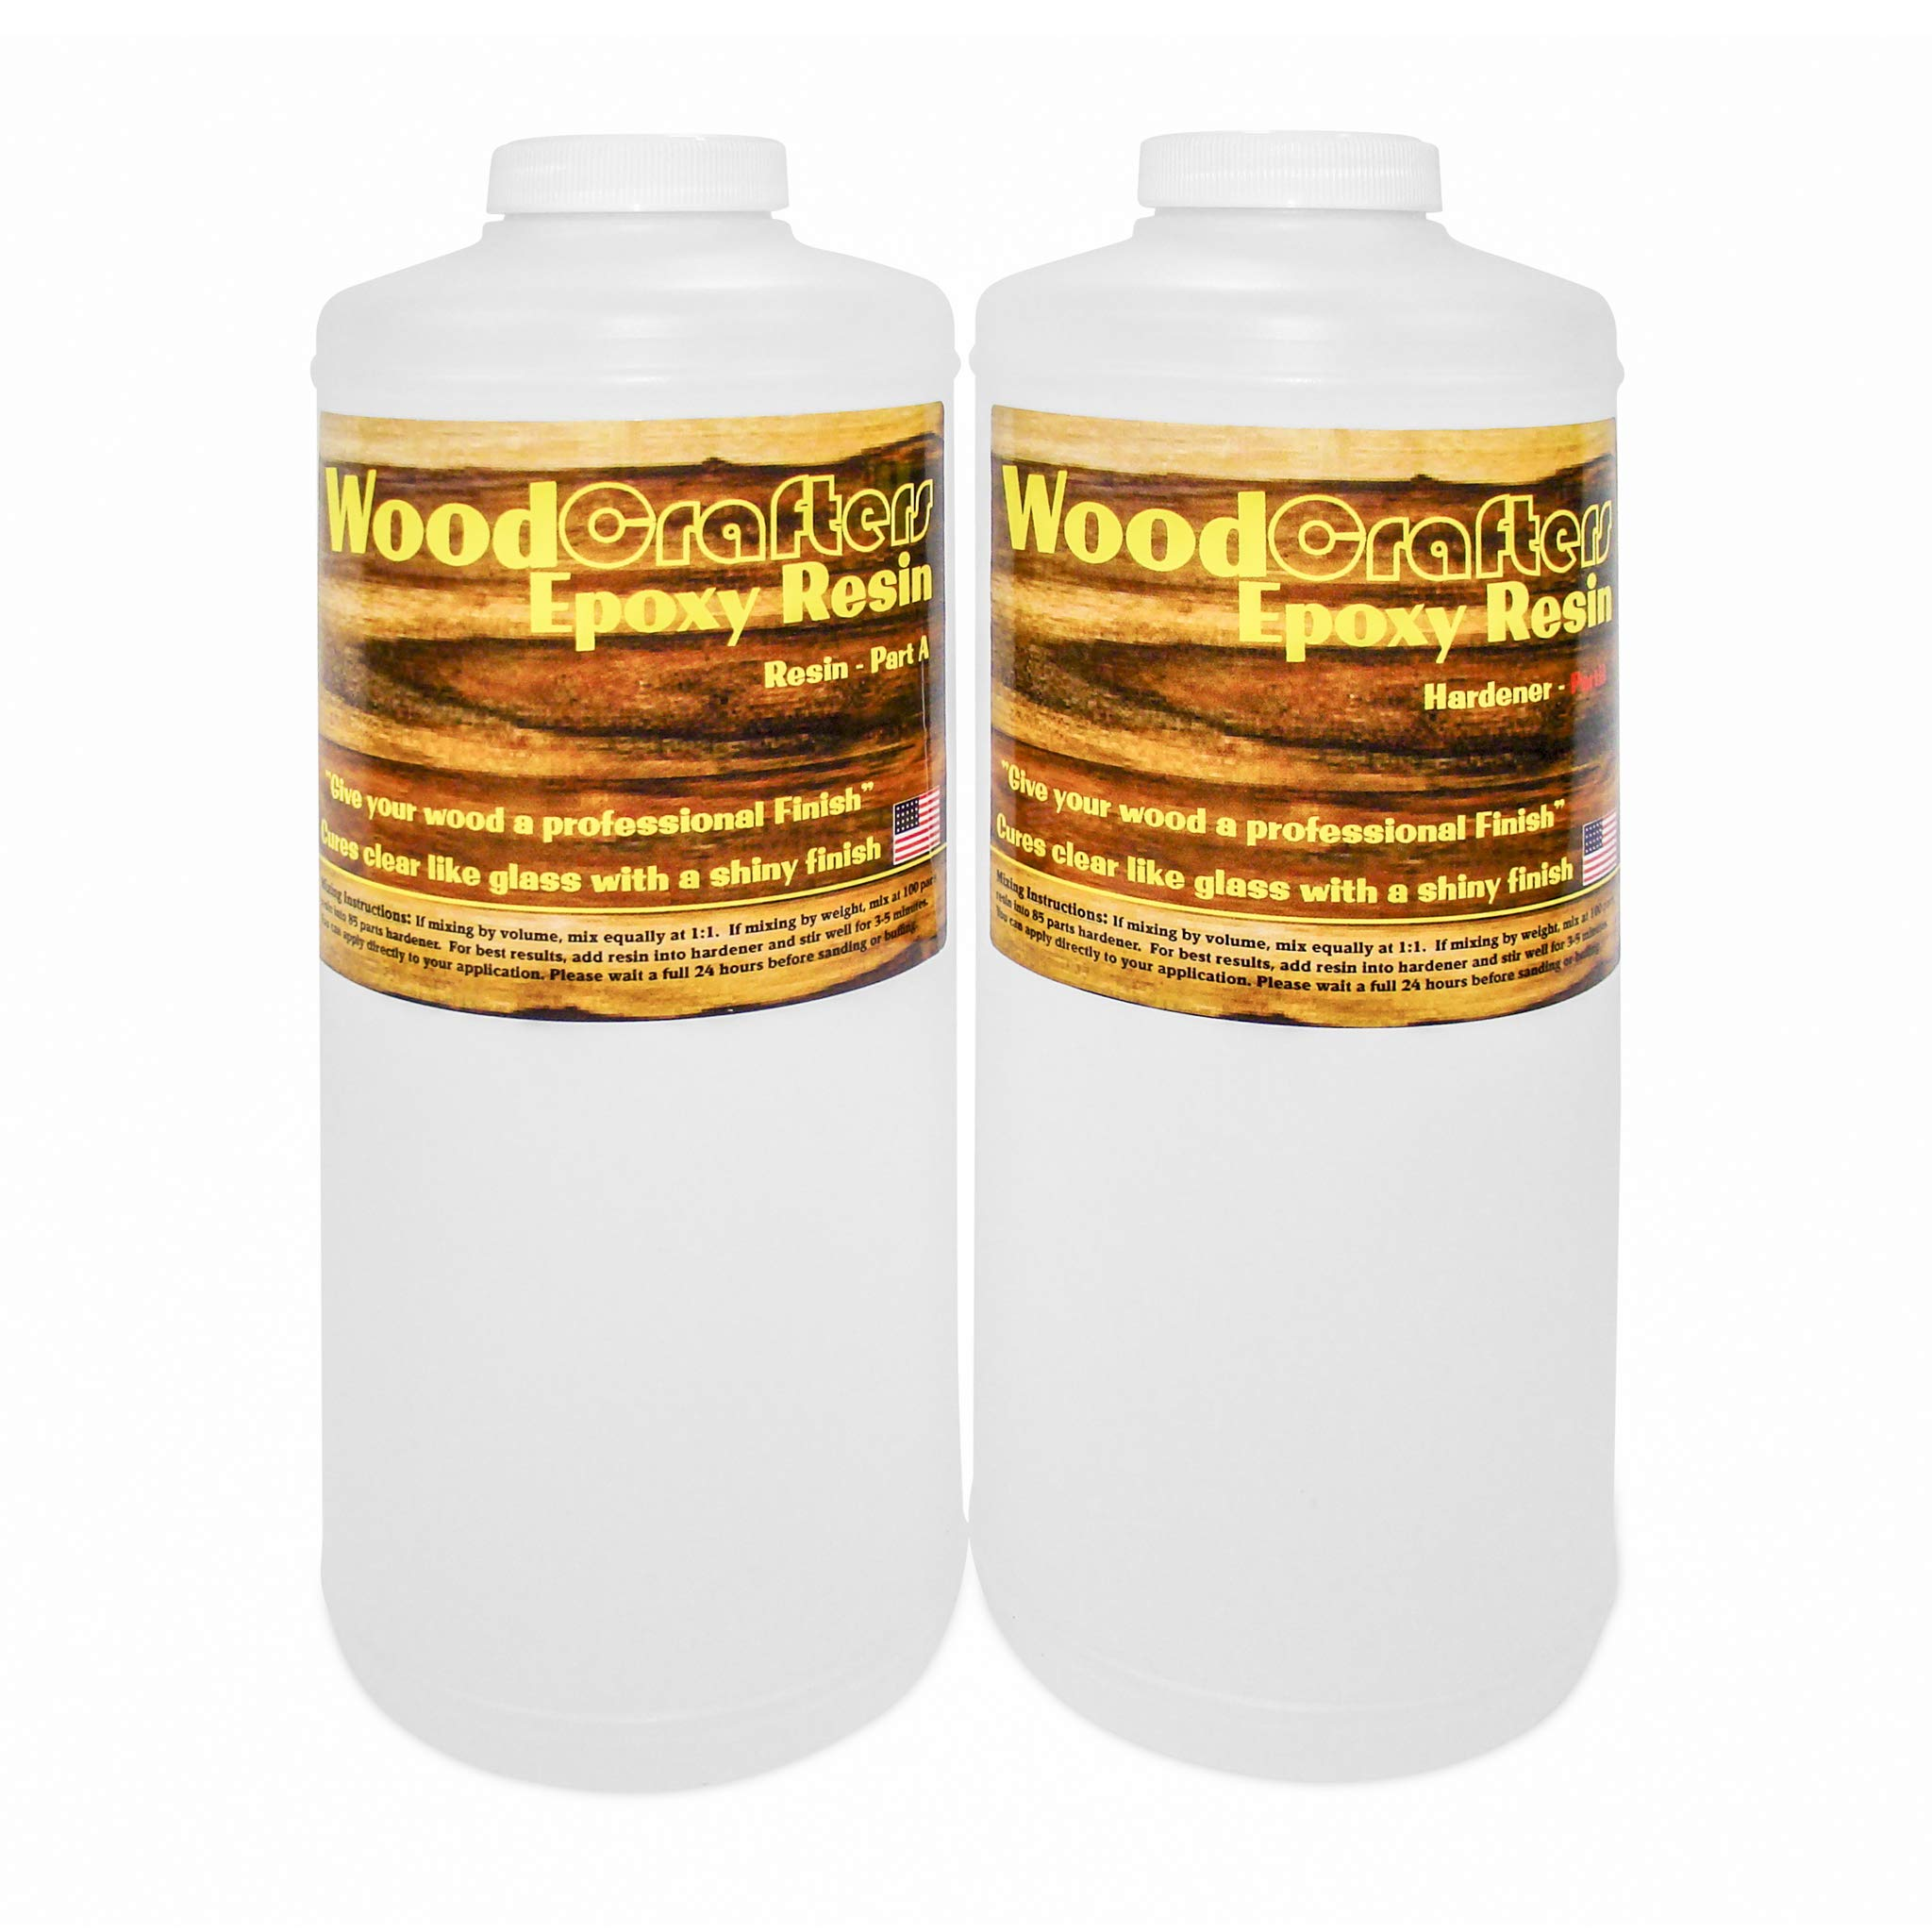 Crystal Clear WoodCrafters Epoxy Resin Coating for Bar Table Top - High Gloss Finish for Tabletops - 1 Gallon Kit by Clearcast 7000 (Image #3)